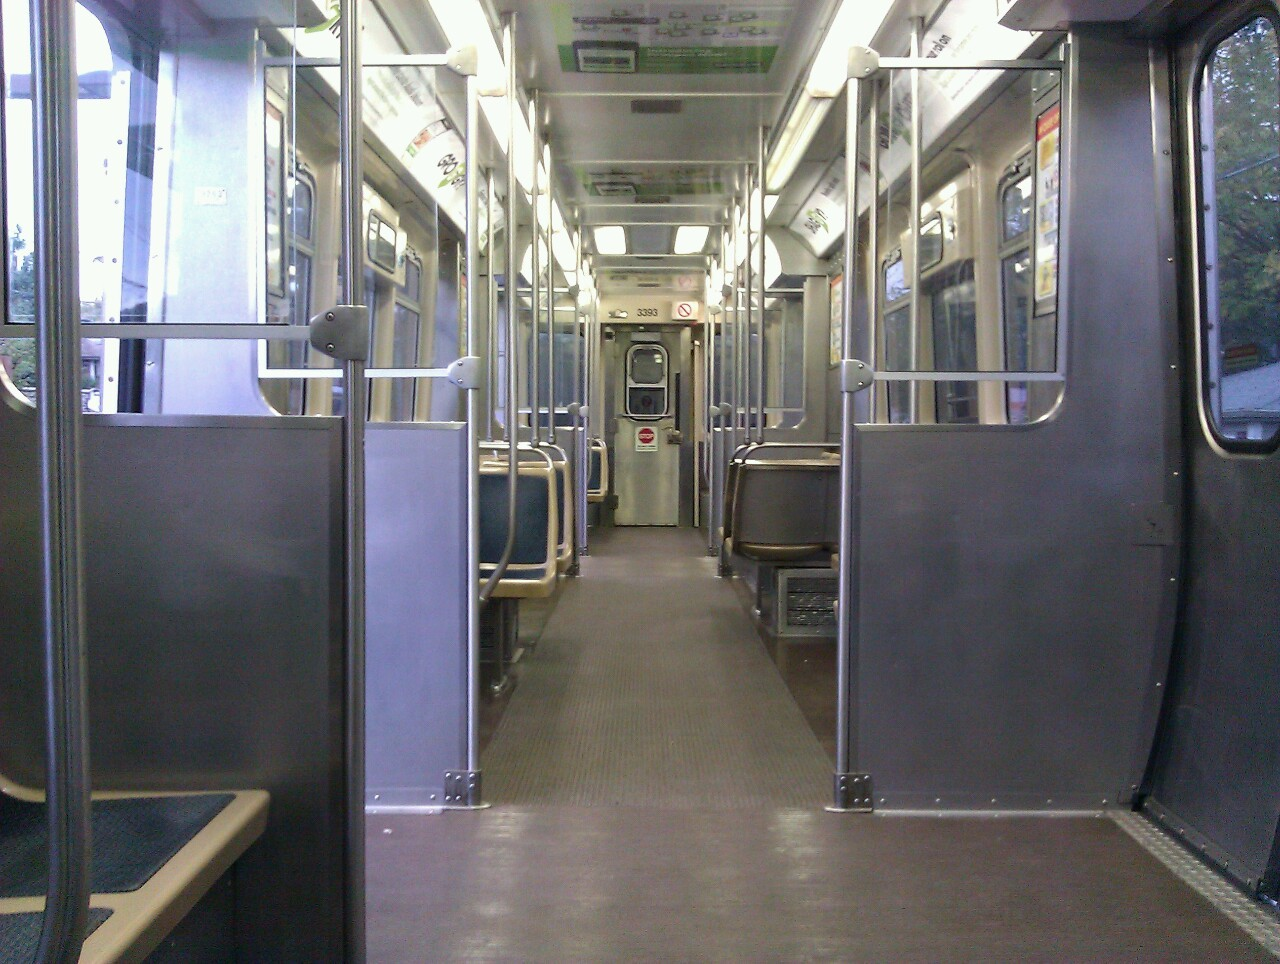 A nice quiet morning on the brown line.